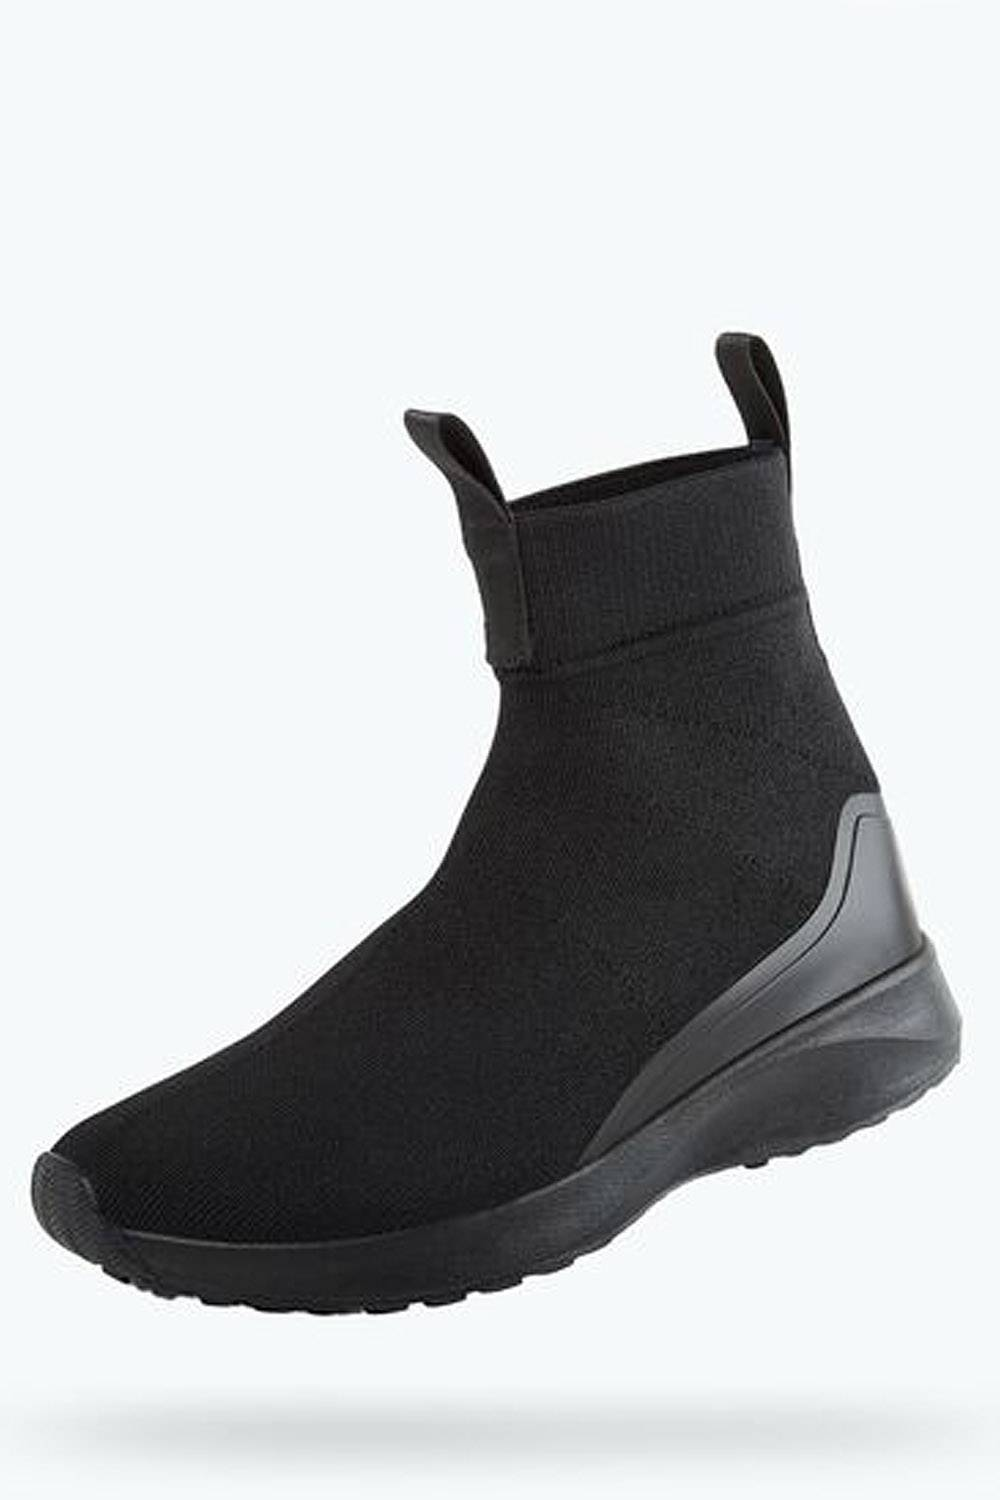 native shoes vegan leather boots